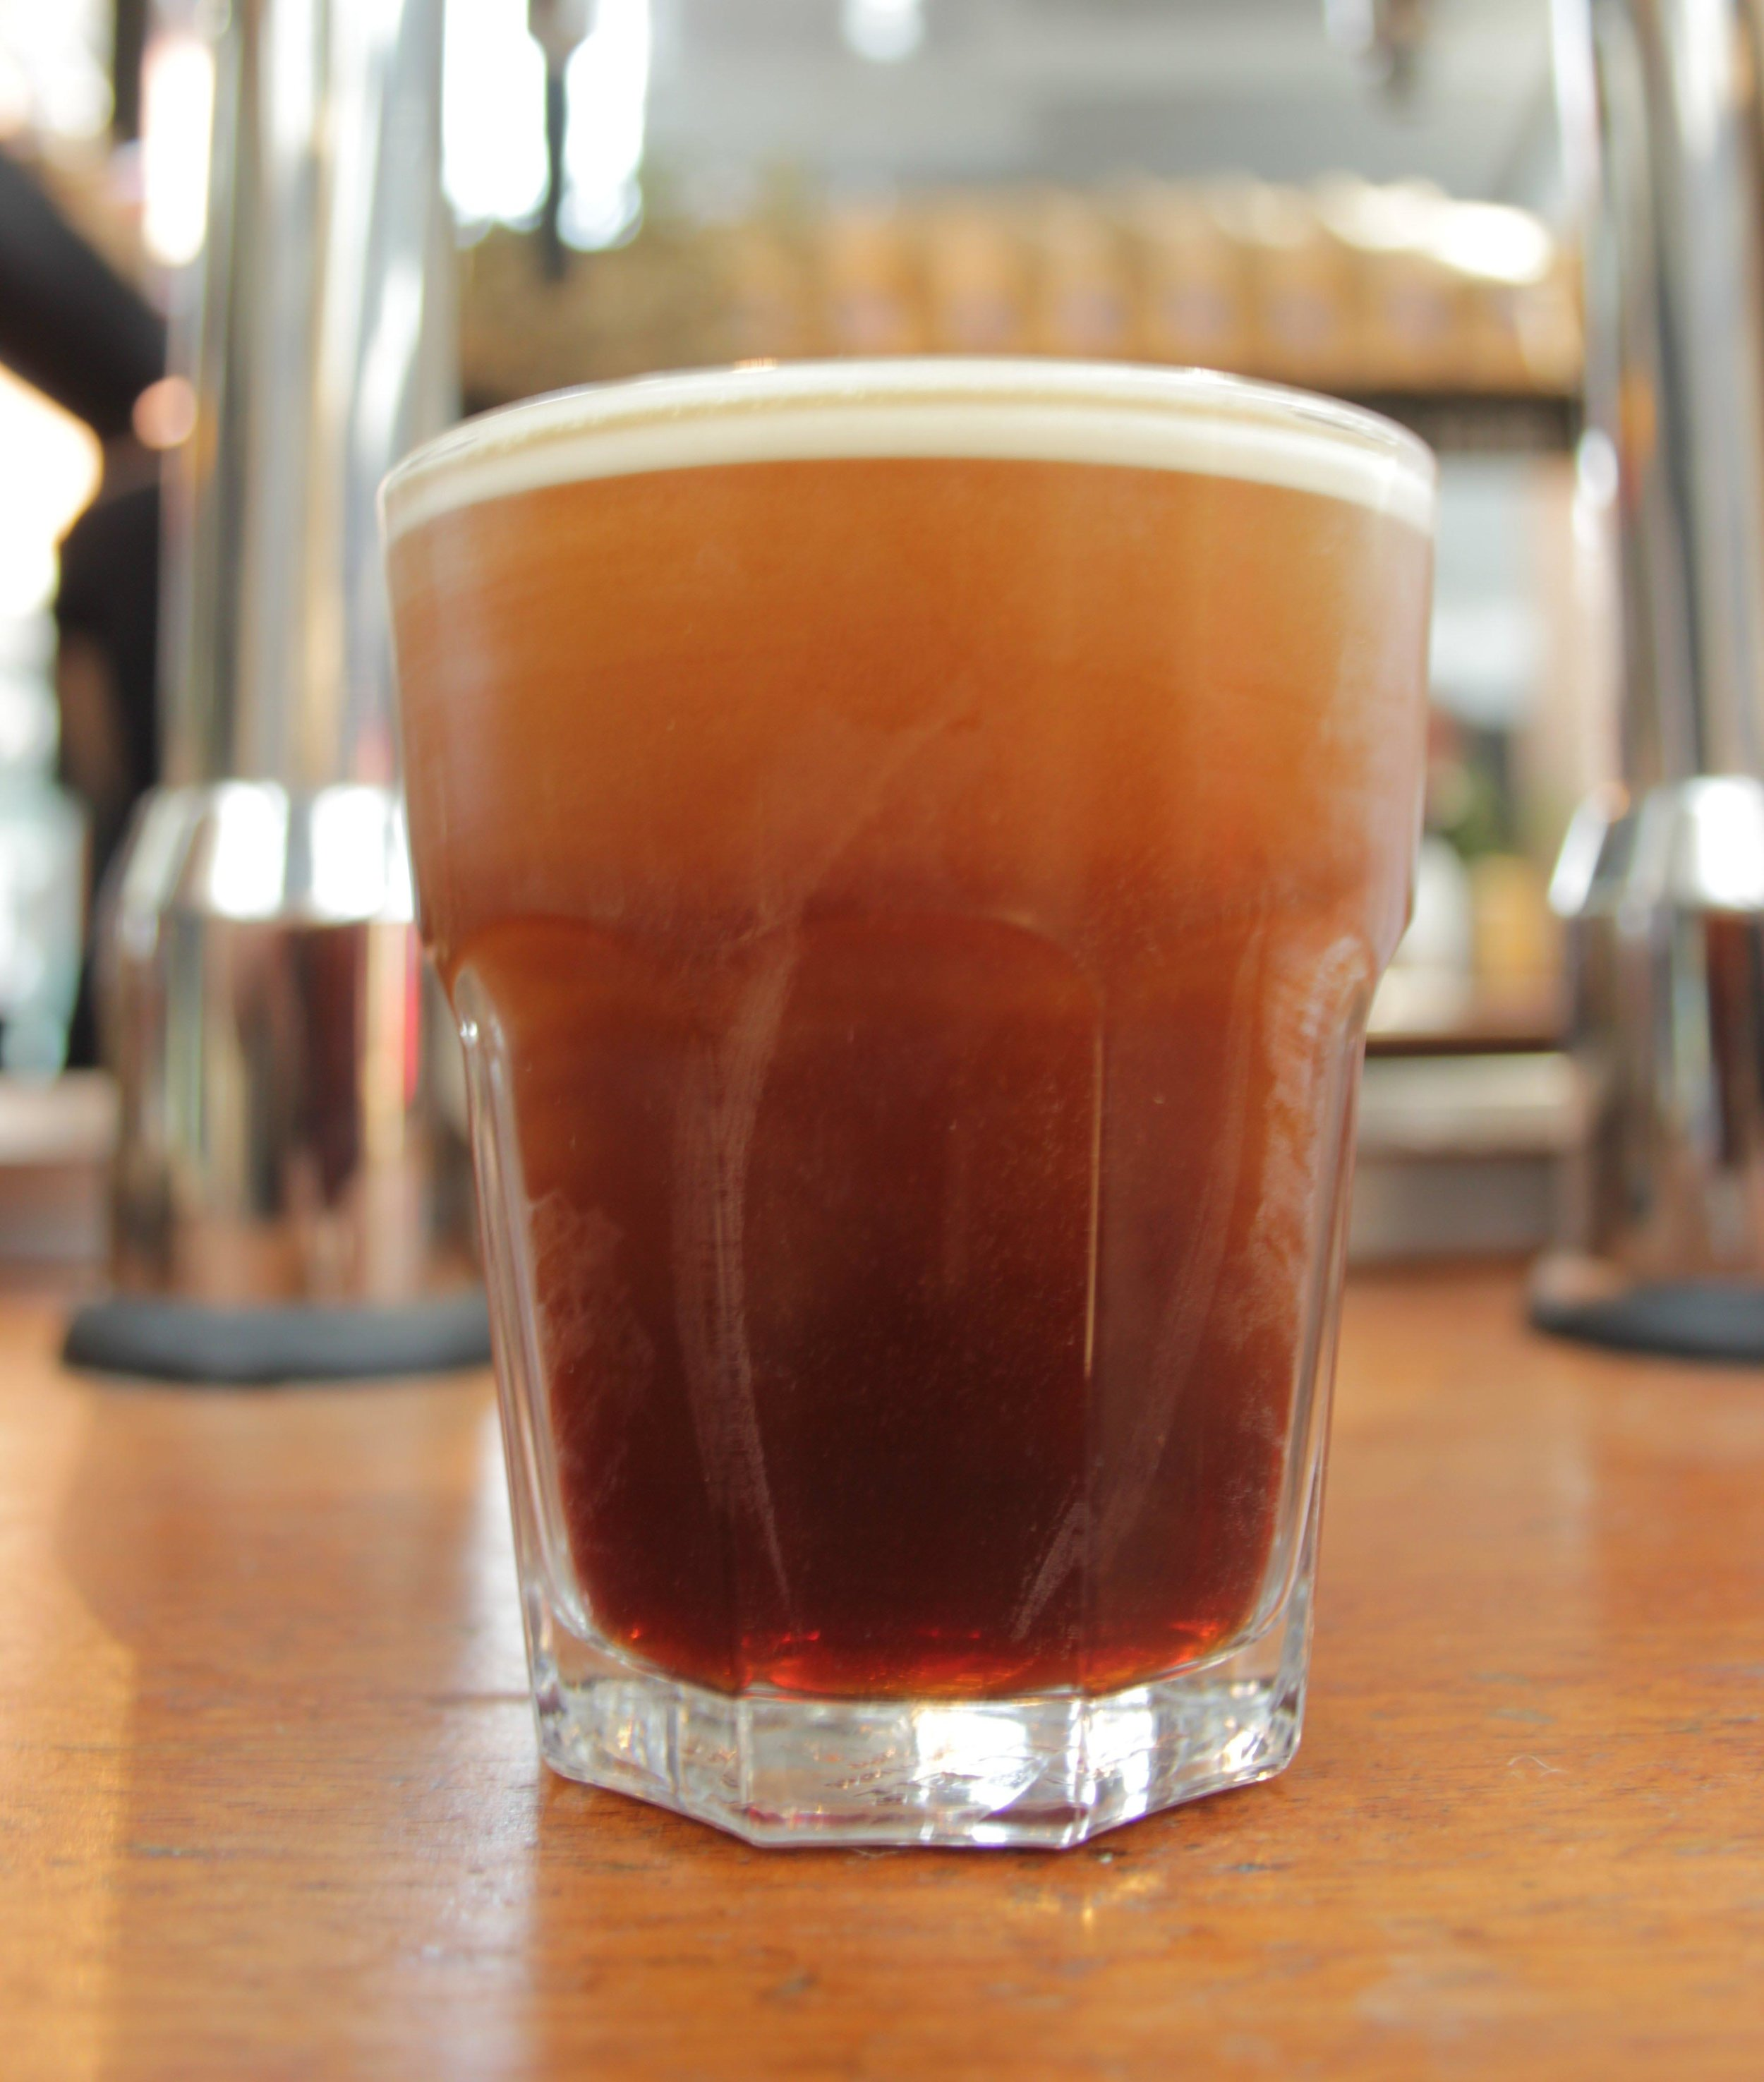 Climpson & Sons Nitro cold brew. Image c/o https://climpsonandsons.com/